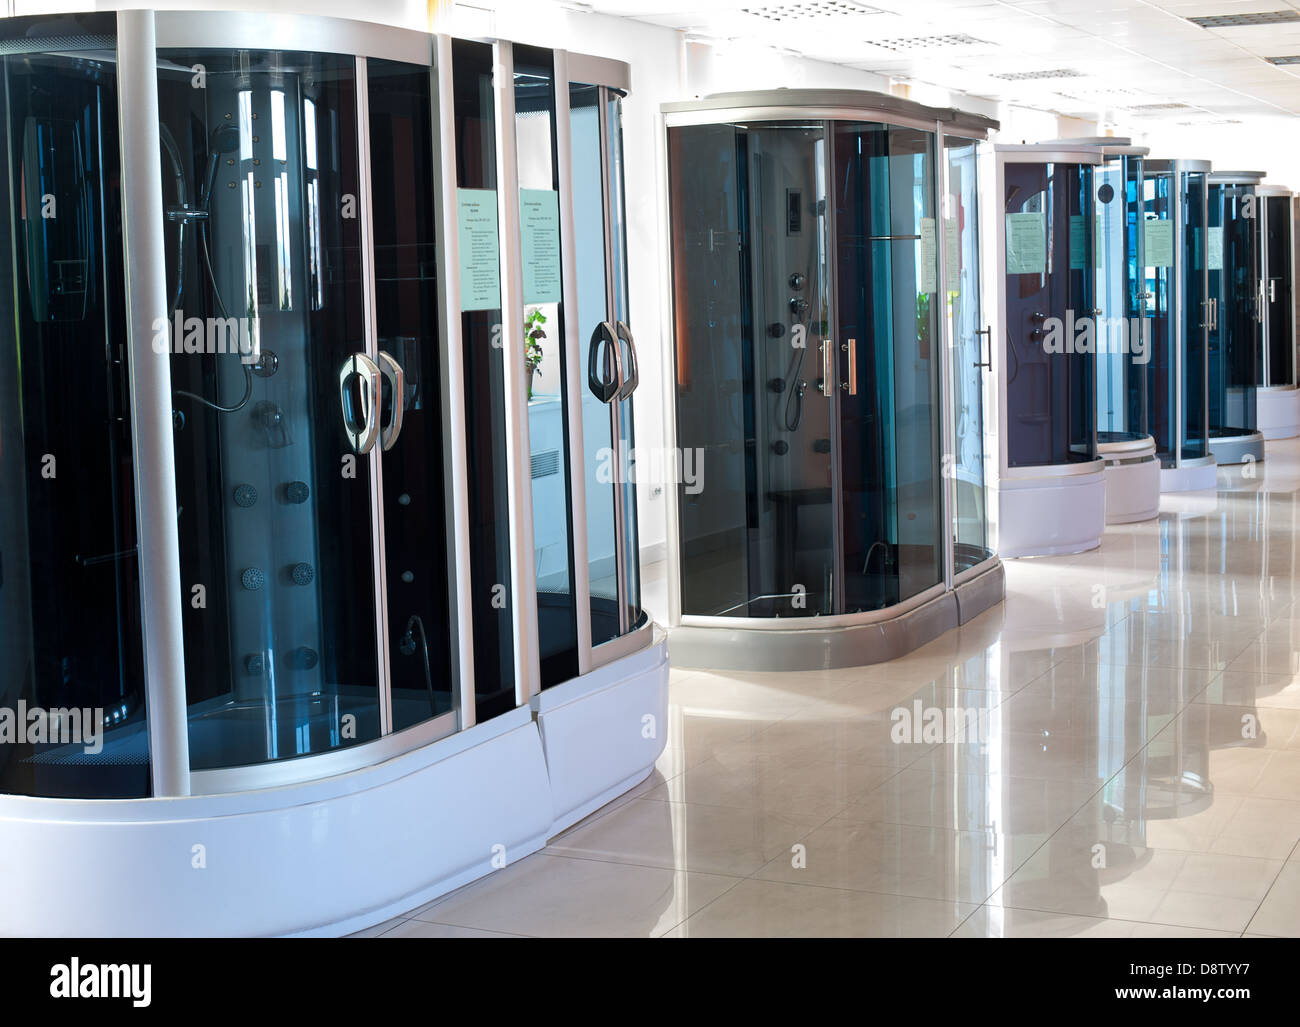 Shower Cubicles Stock Photos & Shower Cubicles Stock Images - Alamy